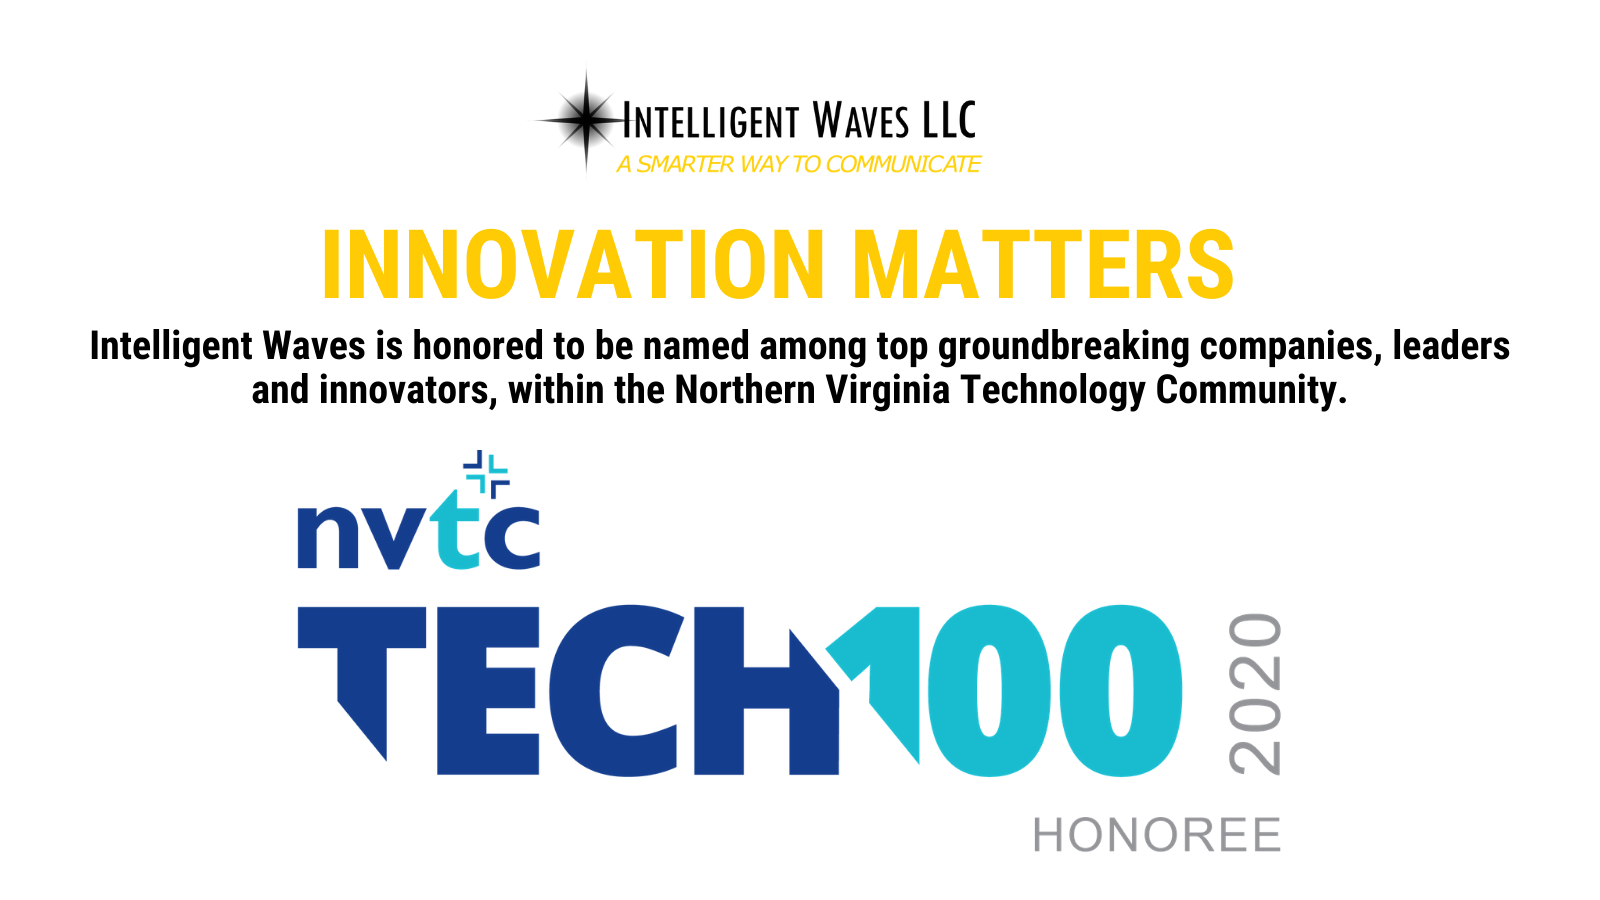 Intelligent Waves honored NVTC Tech100 graphic